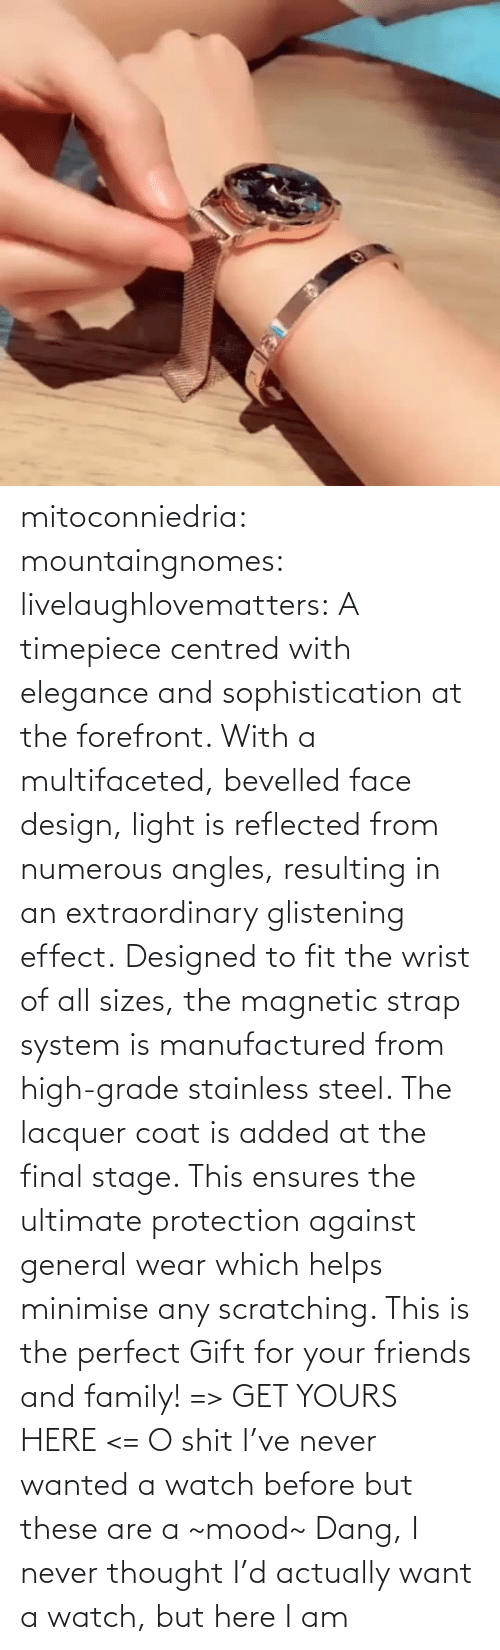 effect: mitoconniedria: mountaingnomes:   livelaughlovematters:  A timepiece centred with elegance and sophistication at the forefront. With a multifaceted, bevelled face design, light is reflected from numerous angles, resulting in an extraordinary glistening effect. Designed to fit the wrist of all sizes, the magnetic strap system is manufactured from high-grade stainless steel. The lacquer coat is added at the final stage. This ensures the ultimate protection against general wear which helps minimise any scratching. This is the perfect Gift for your friends and family! => GET YOURS HERE <=  O shit I've never wanted a watch before but these are a ~mood~    Dang, I never thought I'd actually want a watch, but here I am